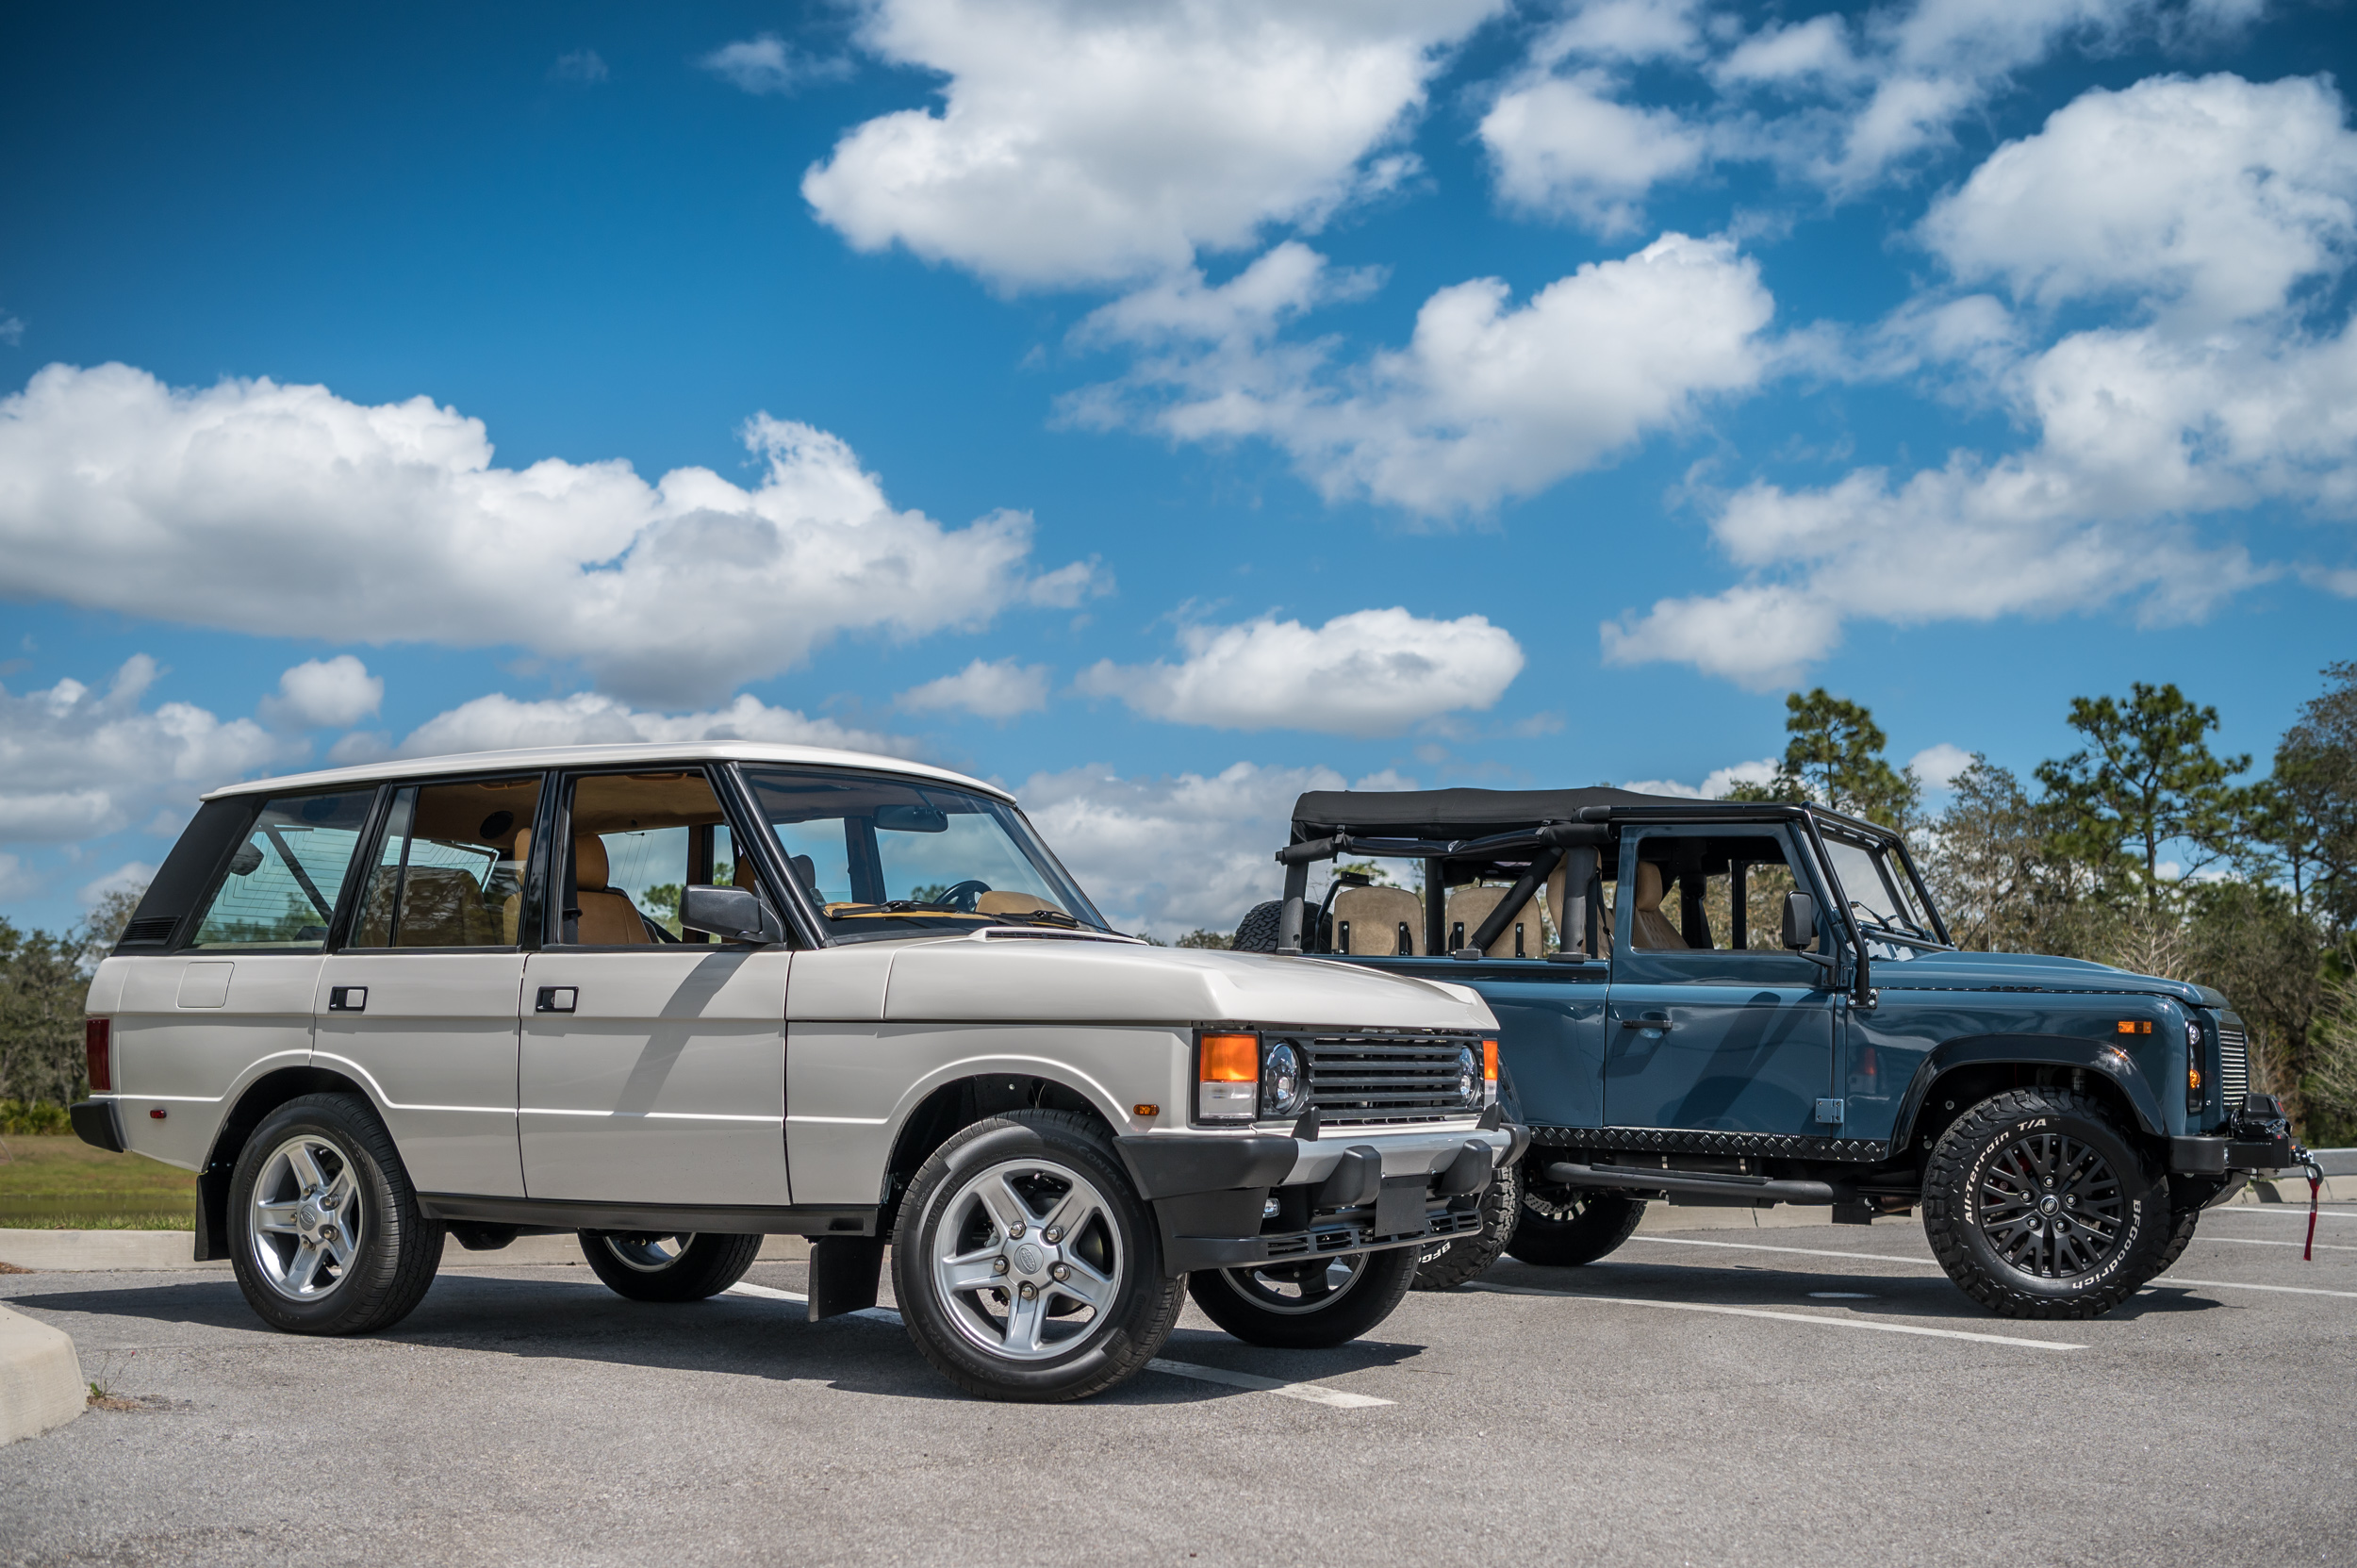 ECD tesla-powered Range Rover Classic and LS-powered Defender 90